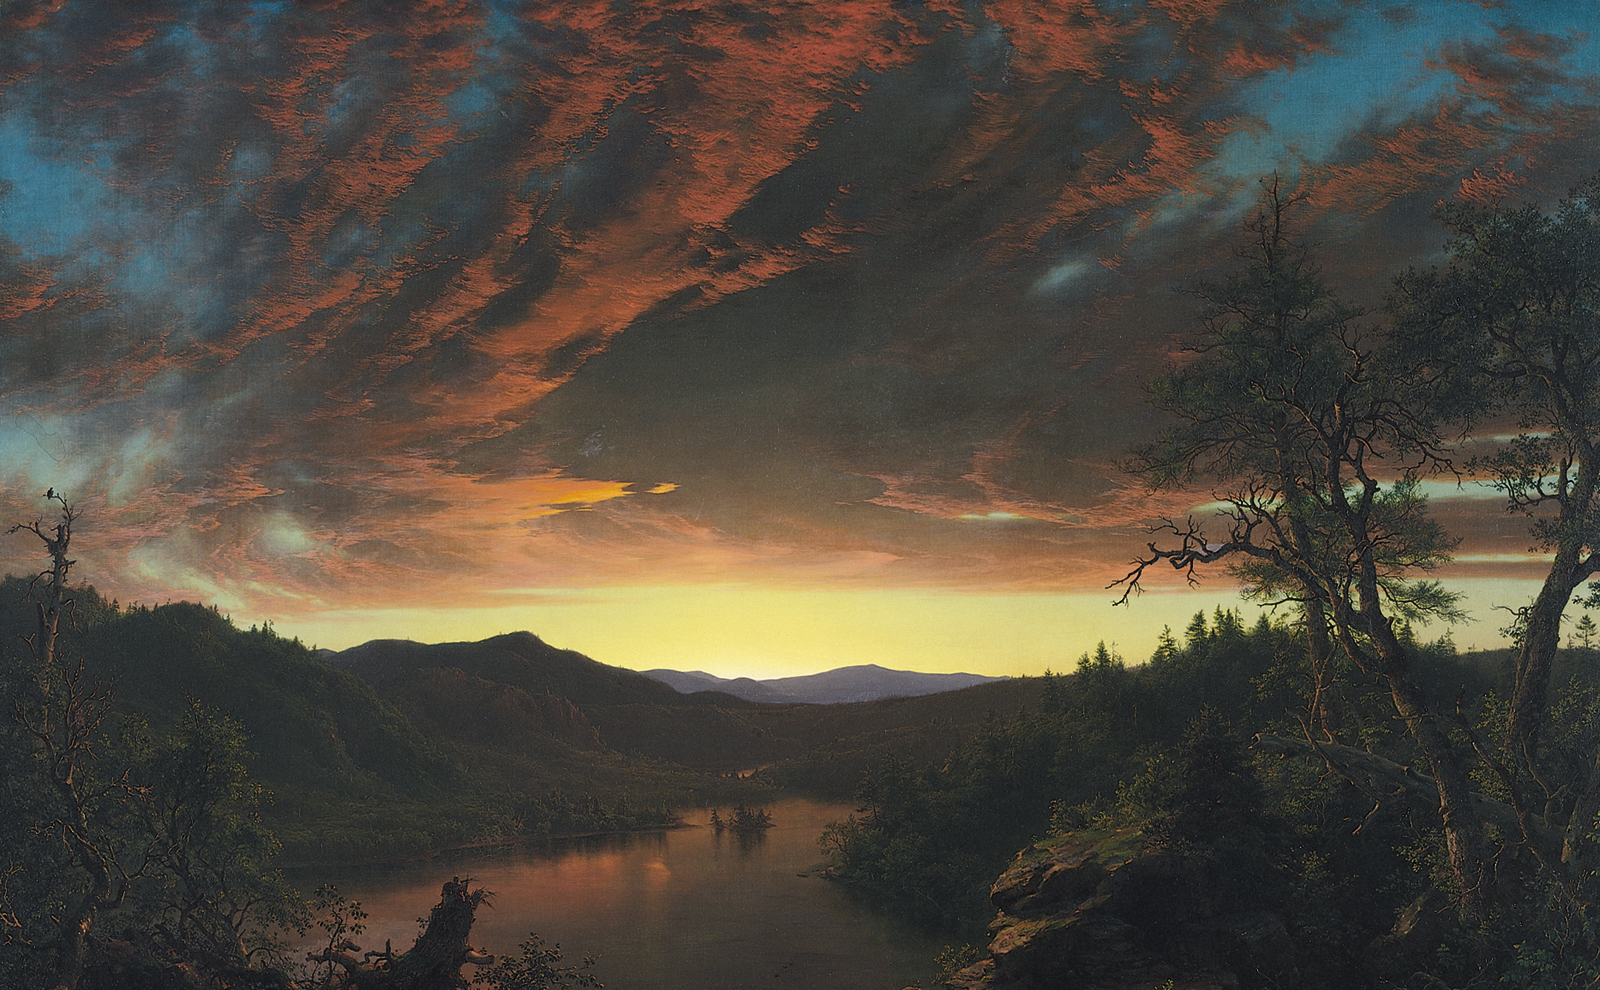 Twilight in the Wilderness (1860)